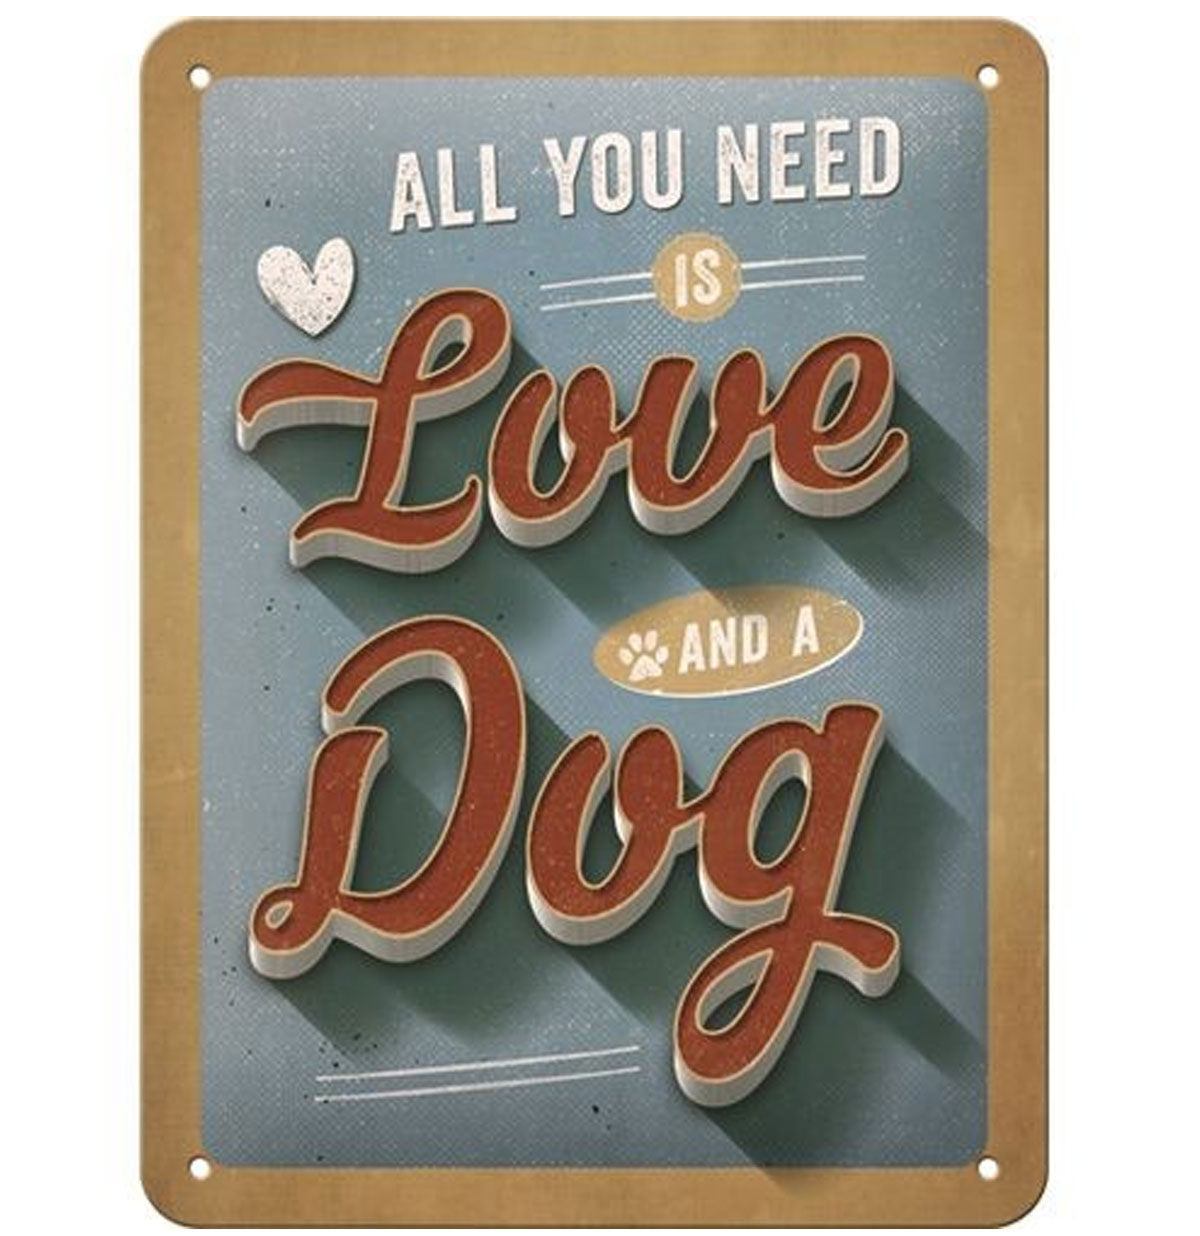 All You Need Is Love And A Dog Metal Sign 15 x 20 cm